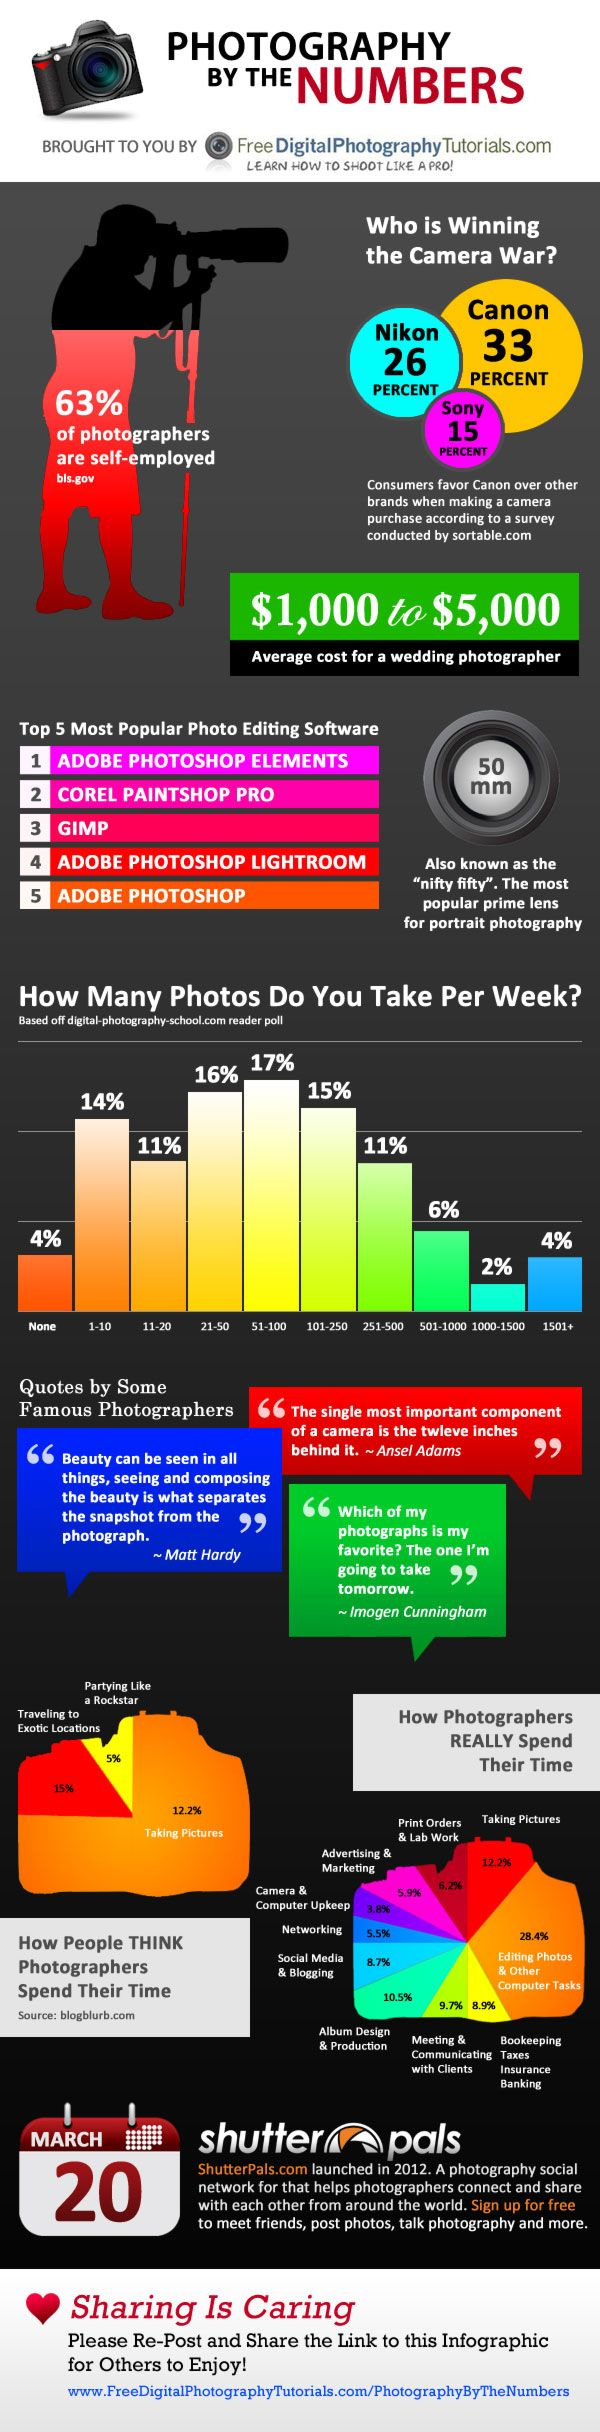 Photography By the Numbers [Infographic]